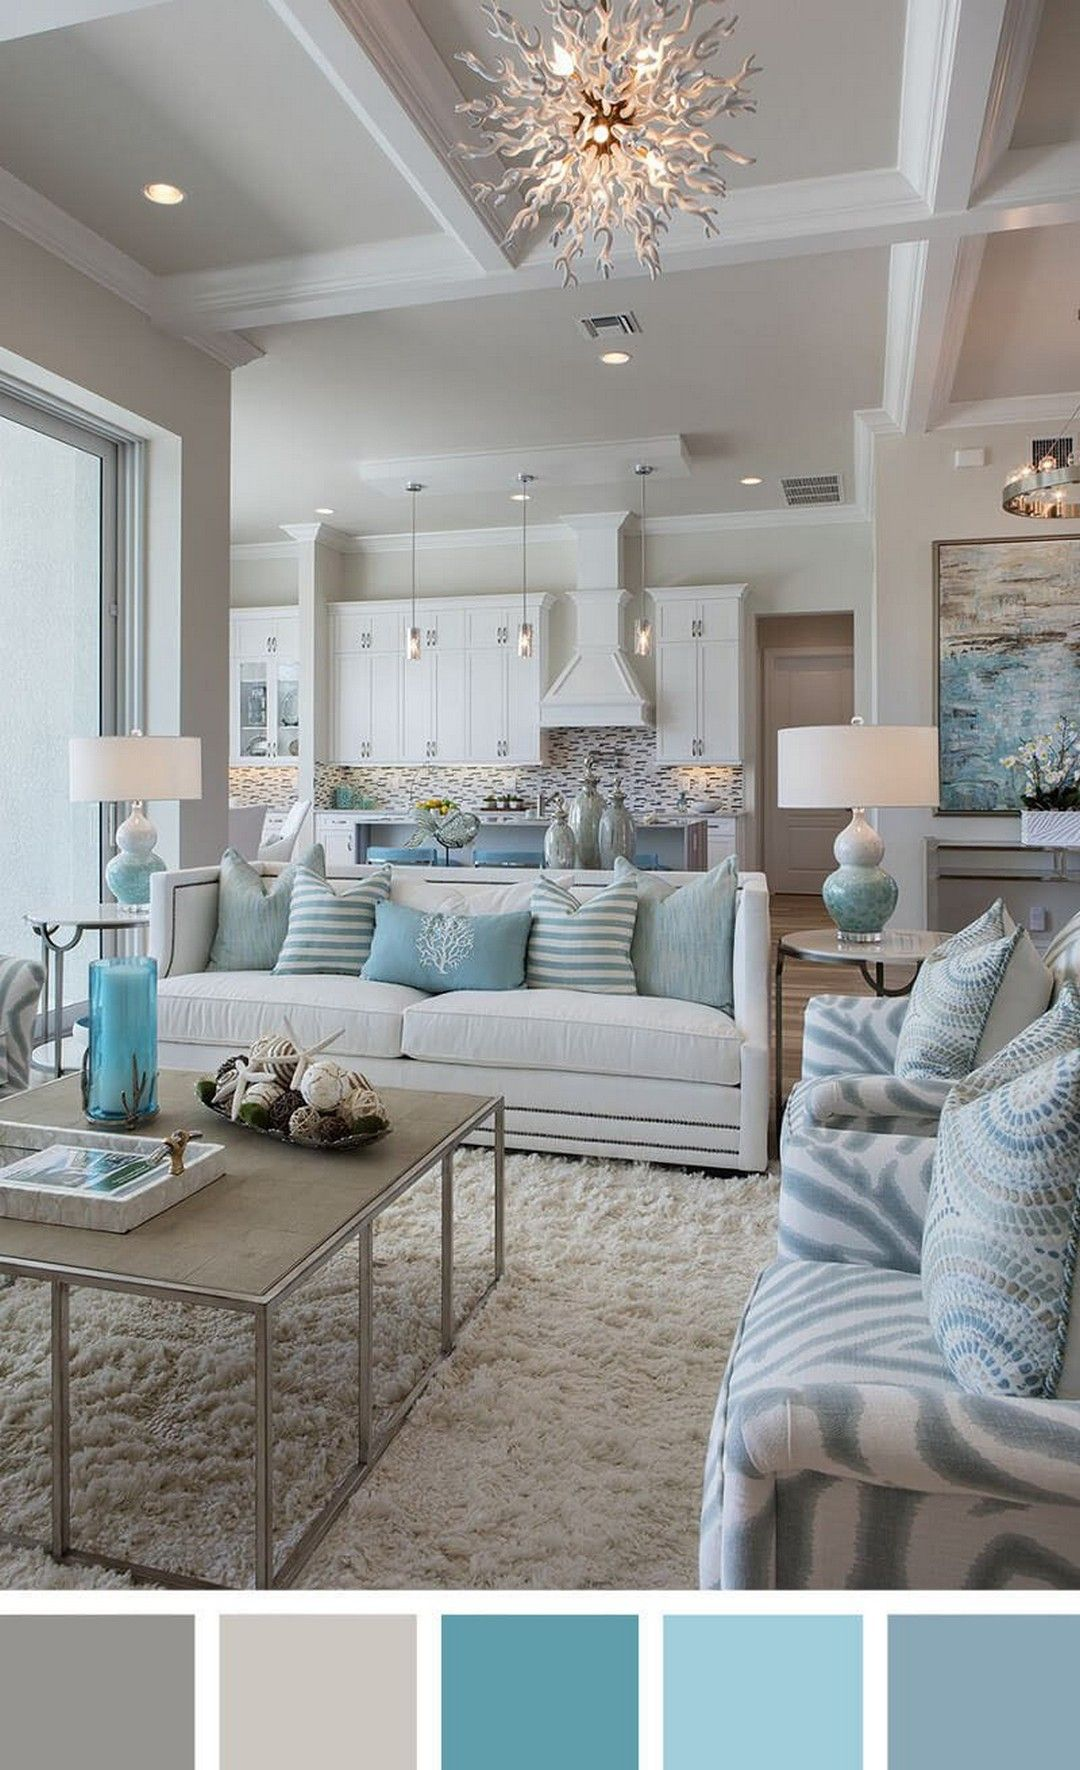 10 Gorgeous And Modern Chic Home Decor Ideas To Improve In Many Ways Coastal Decorating Living Room Coastal Living Rooms Farm House Living Room